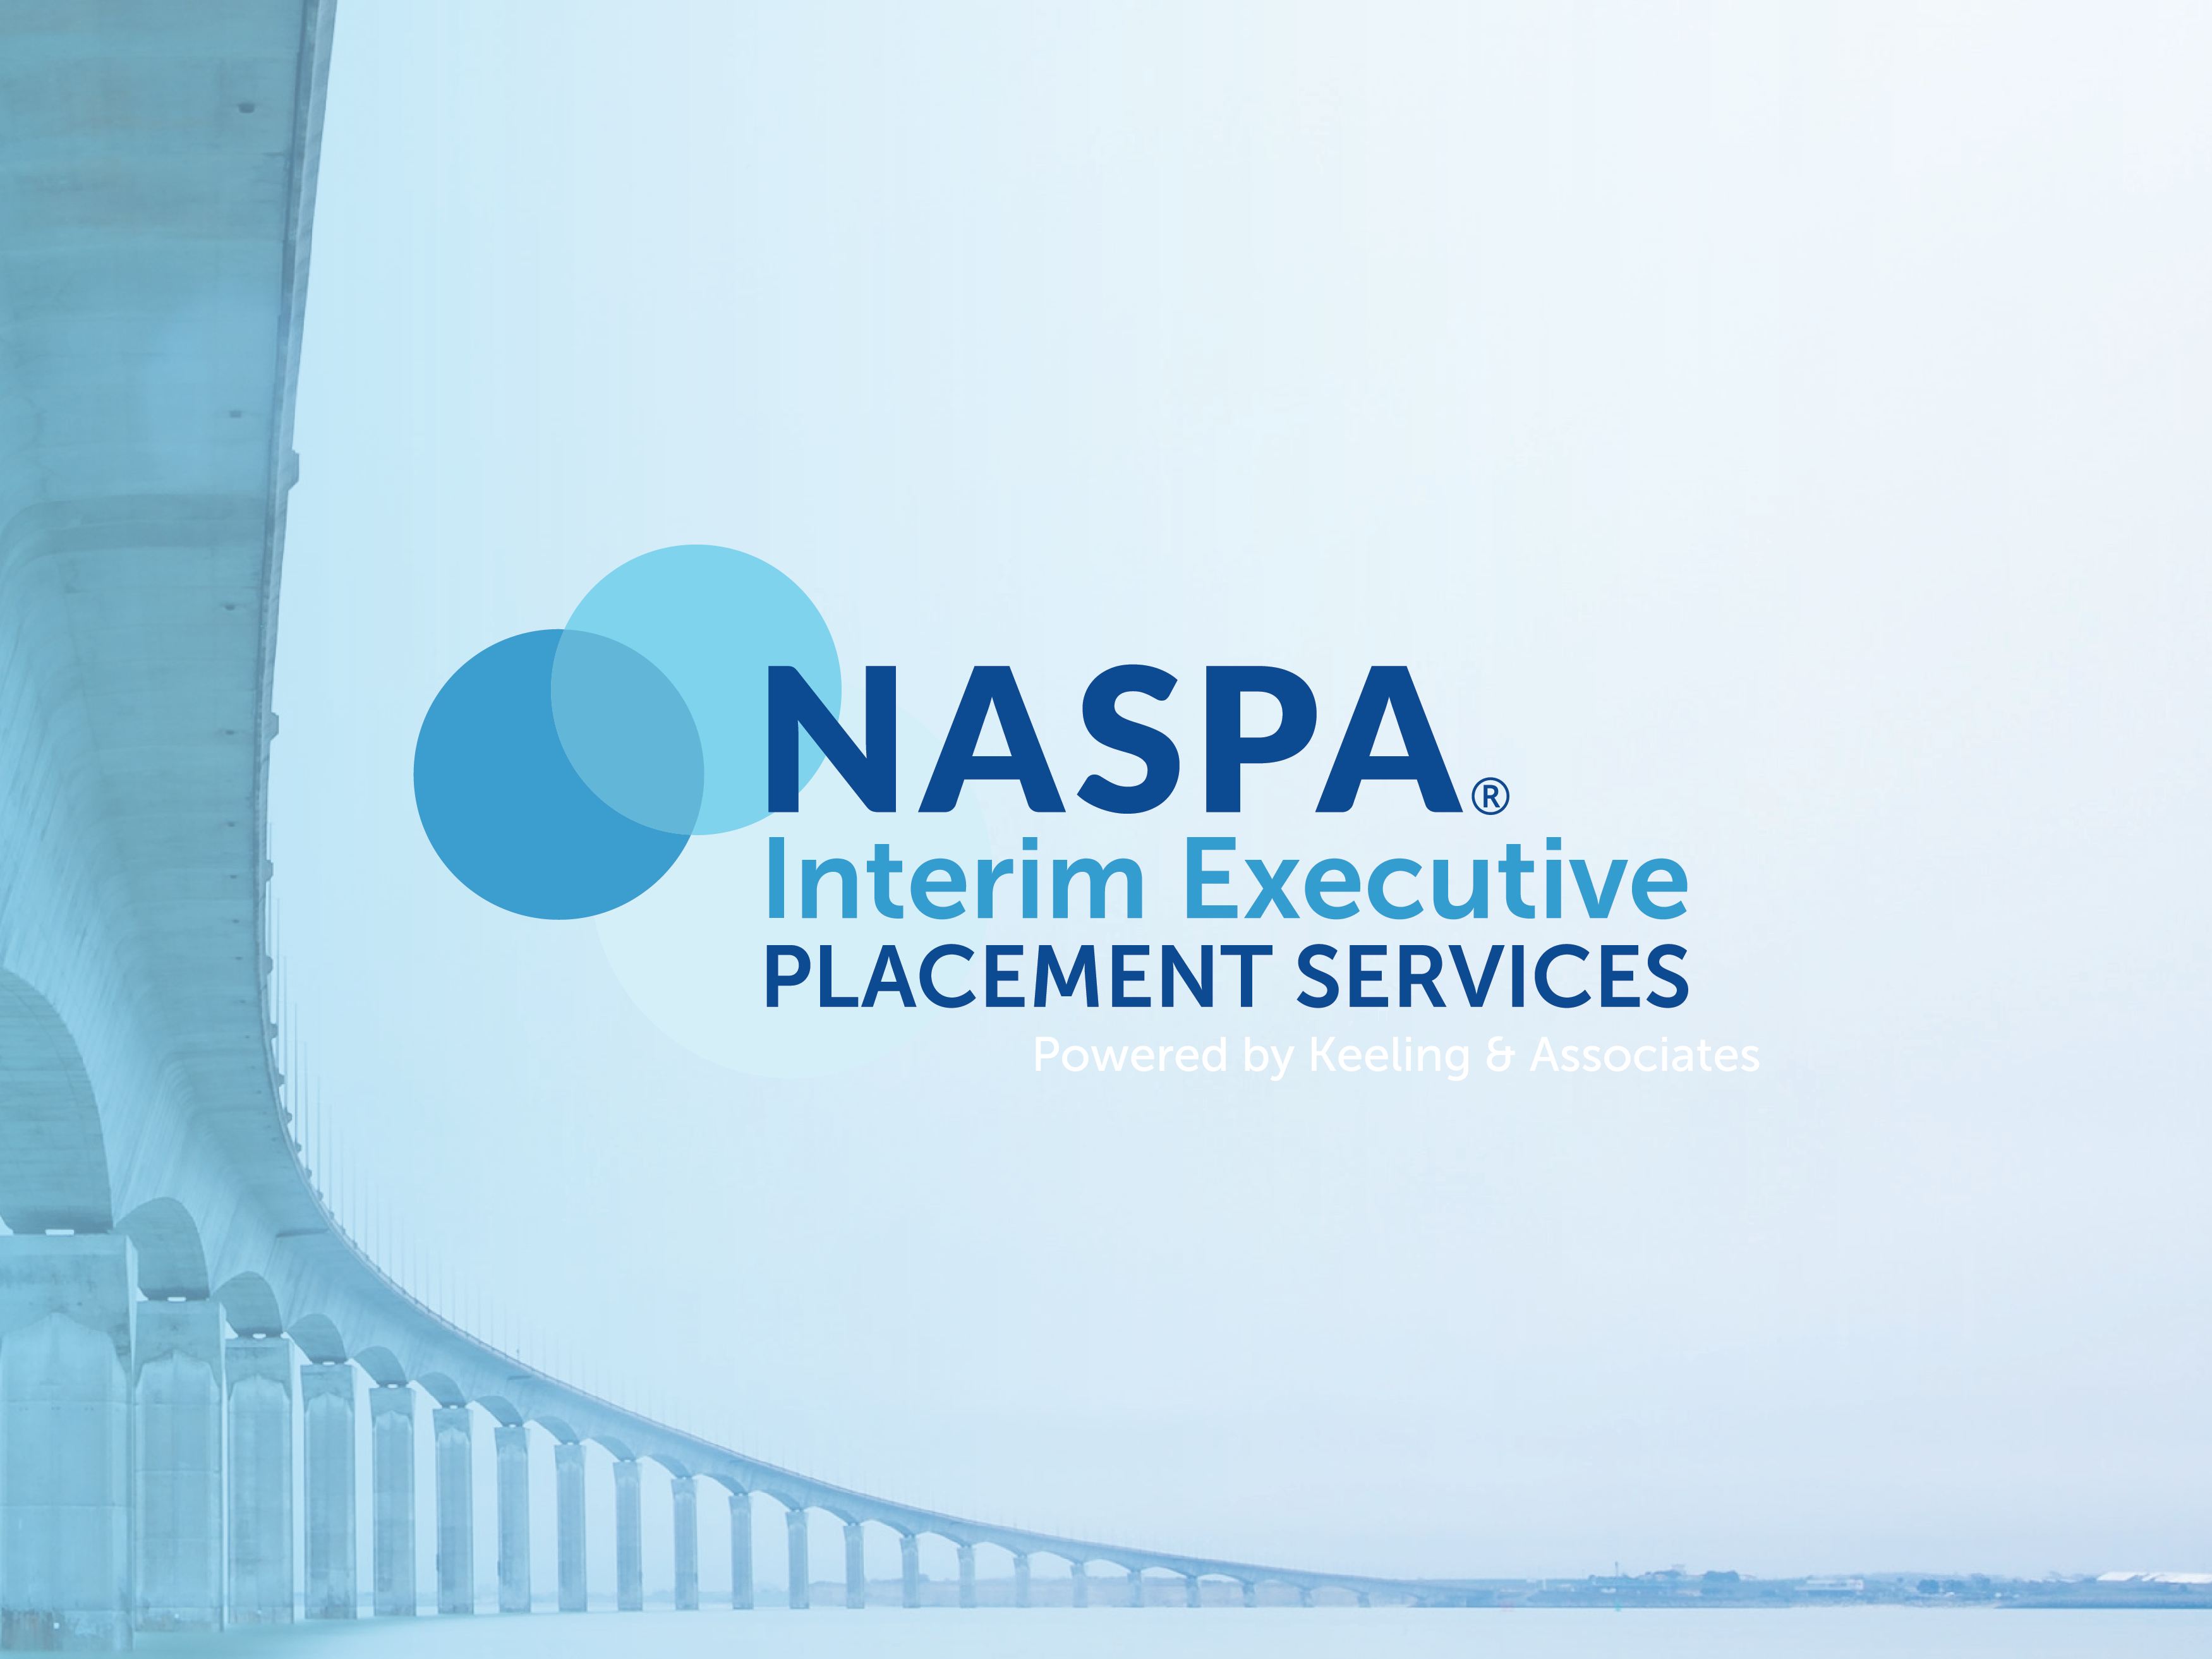 Interim Executive Placement Services Logo